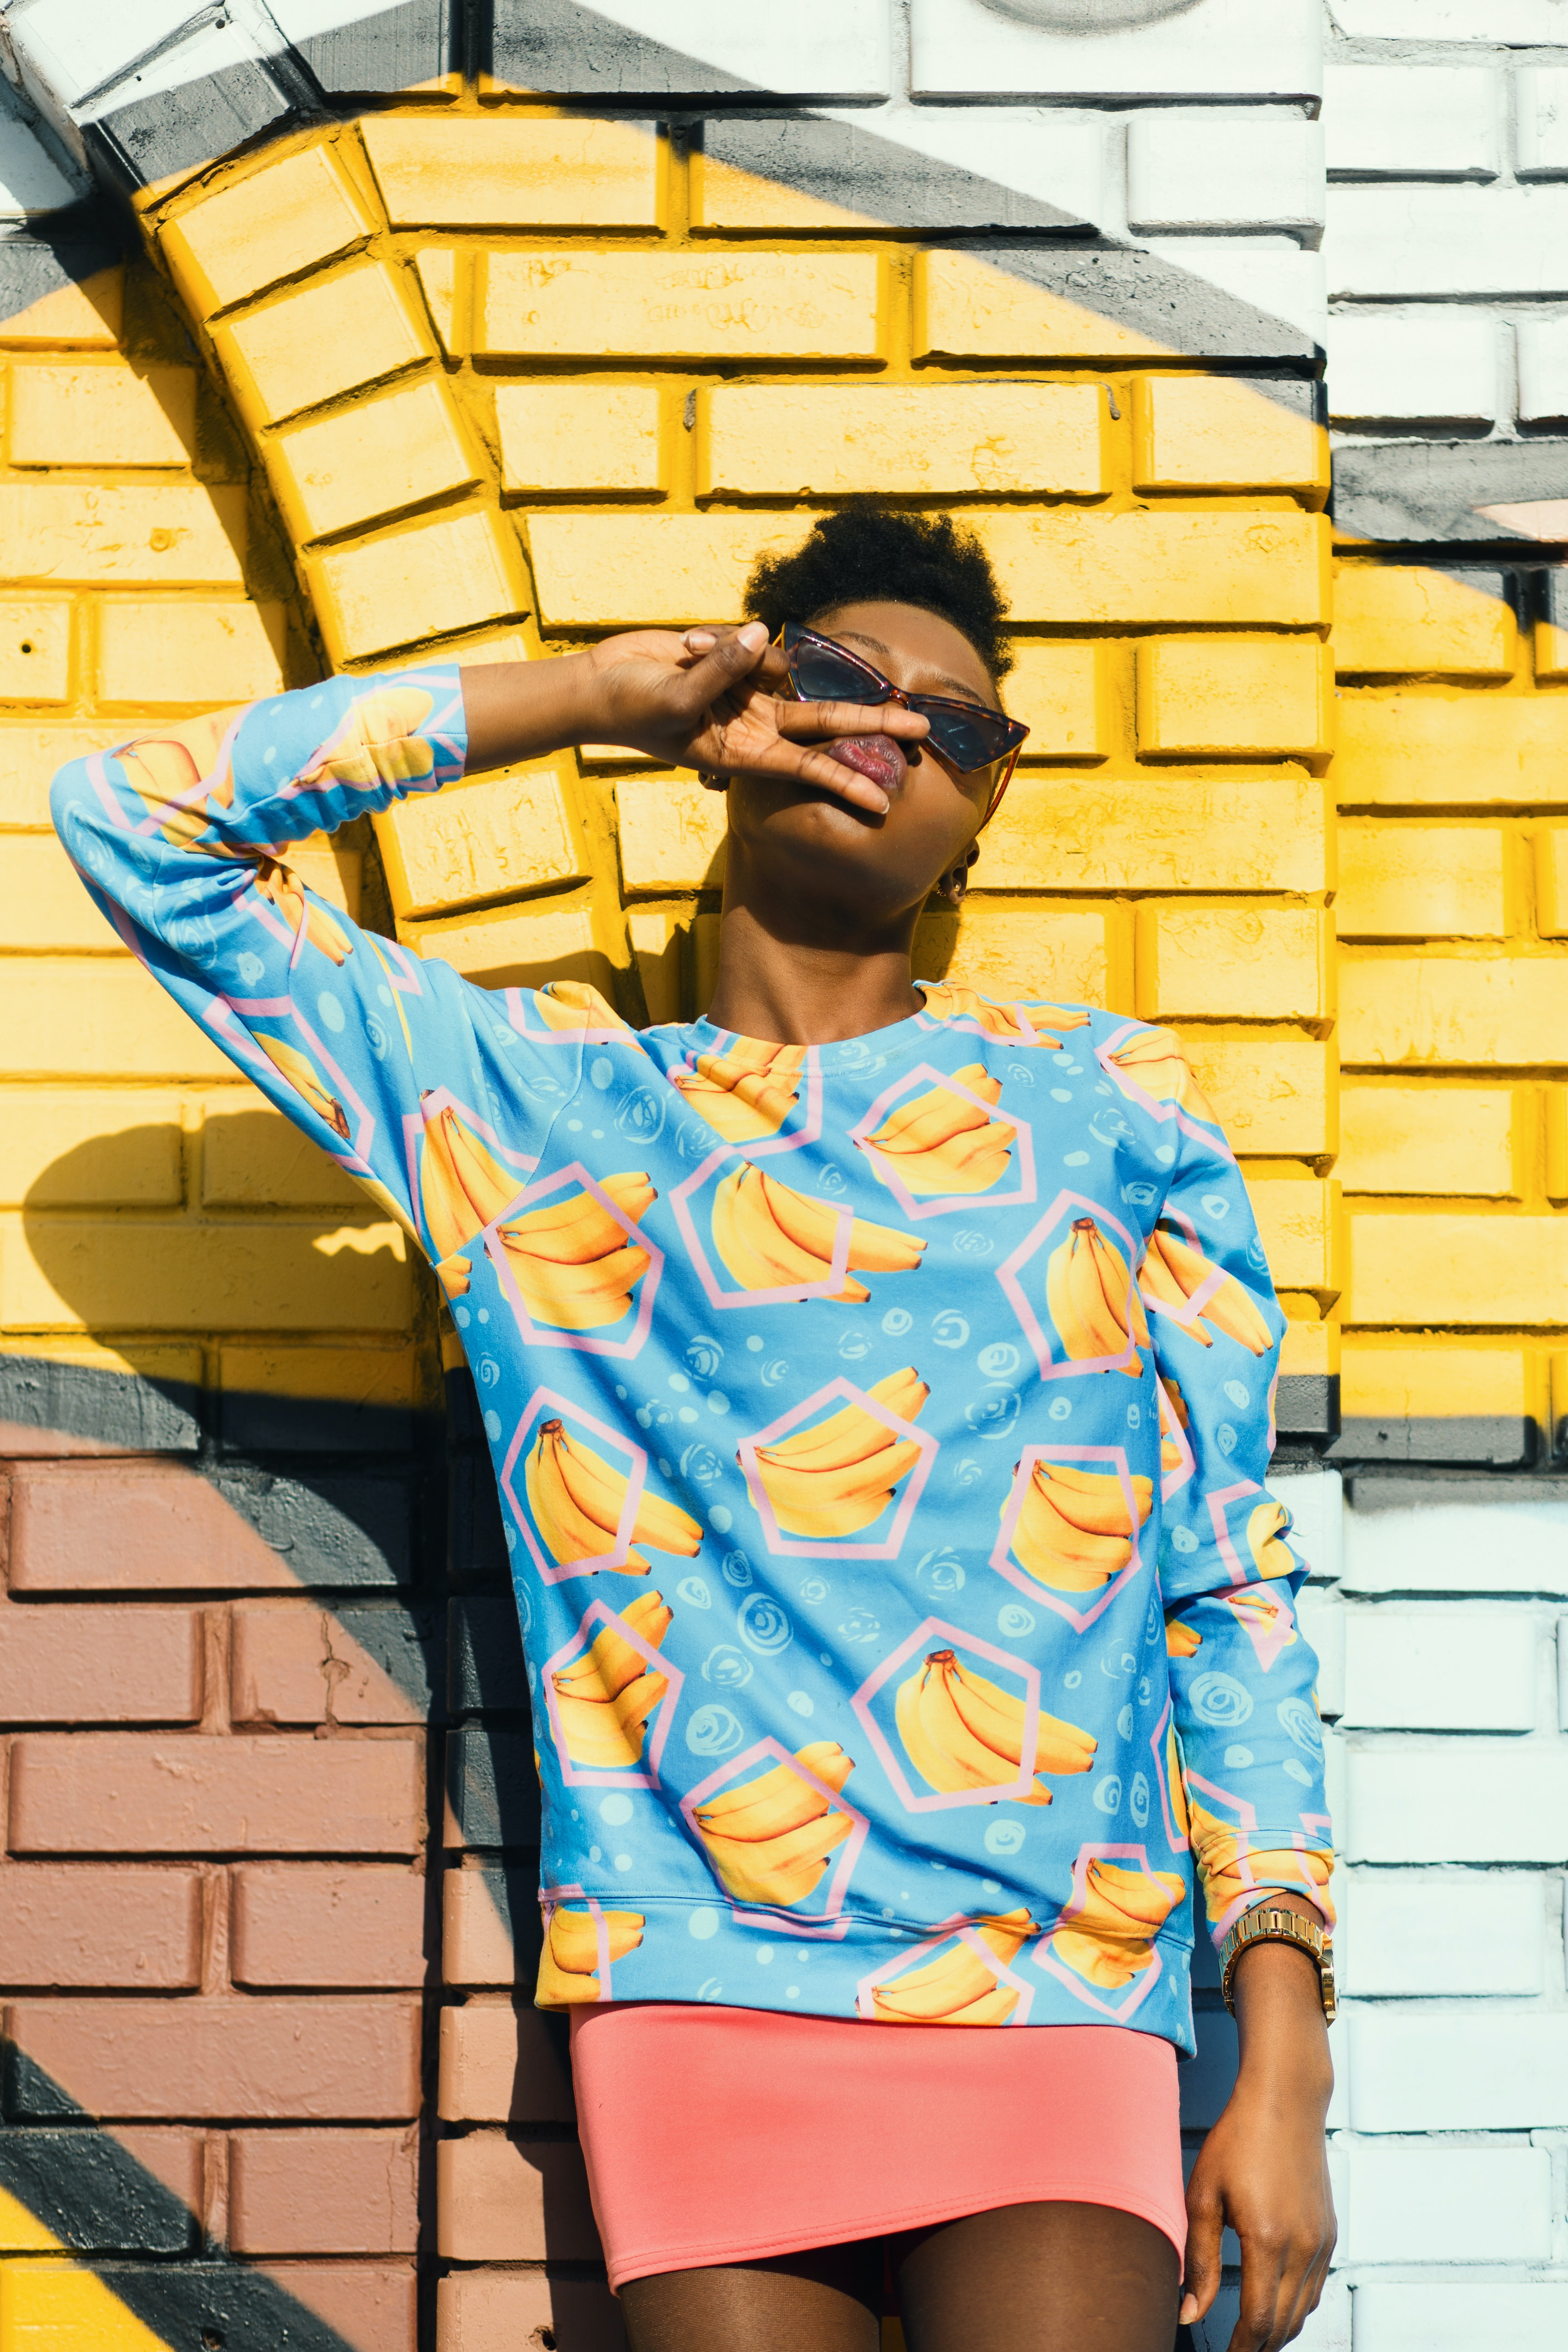 person leaning on wall wearing blue and yellow banana print long-sleeved shirt